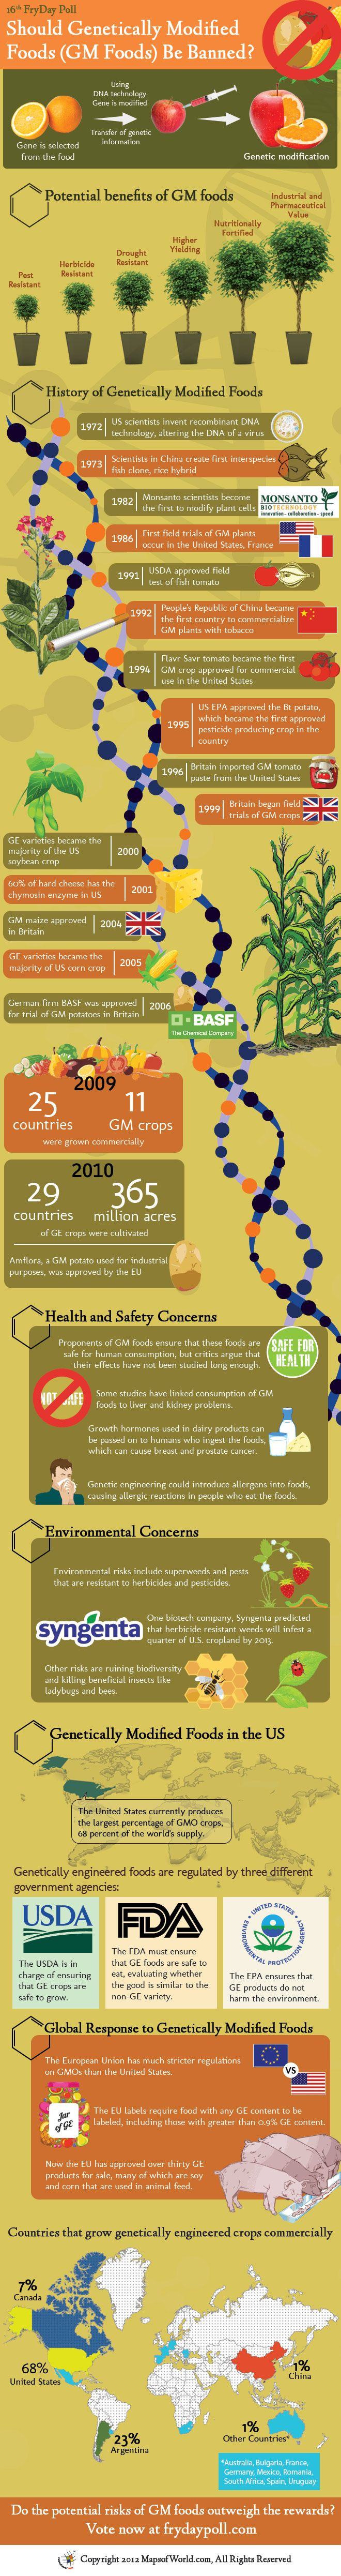 Should GMOs be banned?: Modified Food, Ban, At Home, Growing Food, Genetics Modified, Gmo Food, Gm Food, Food Gmos, Around The World